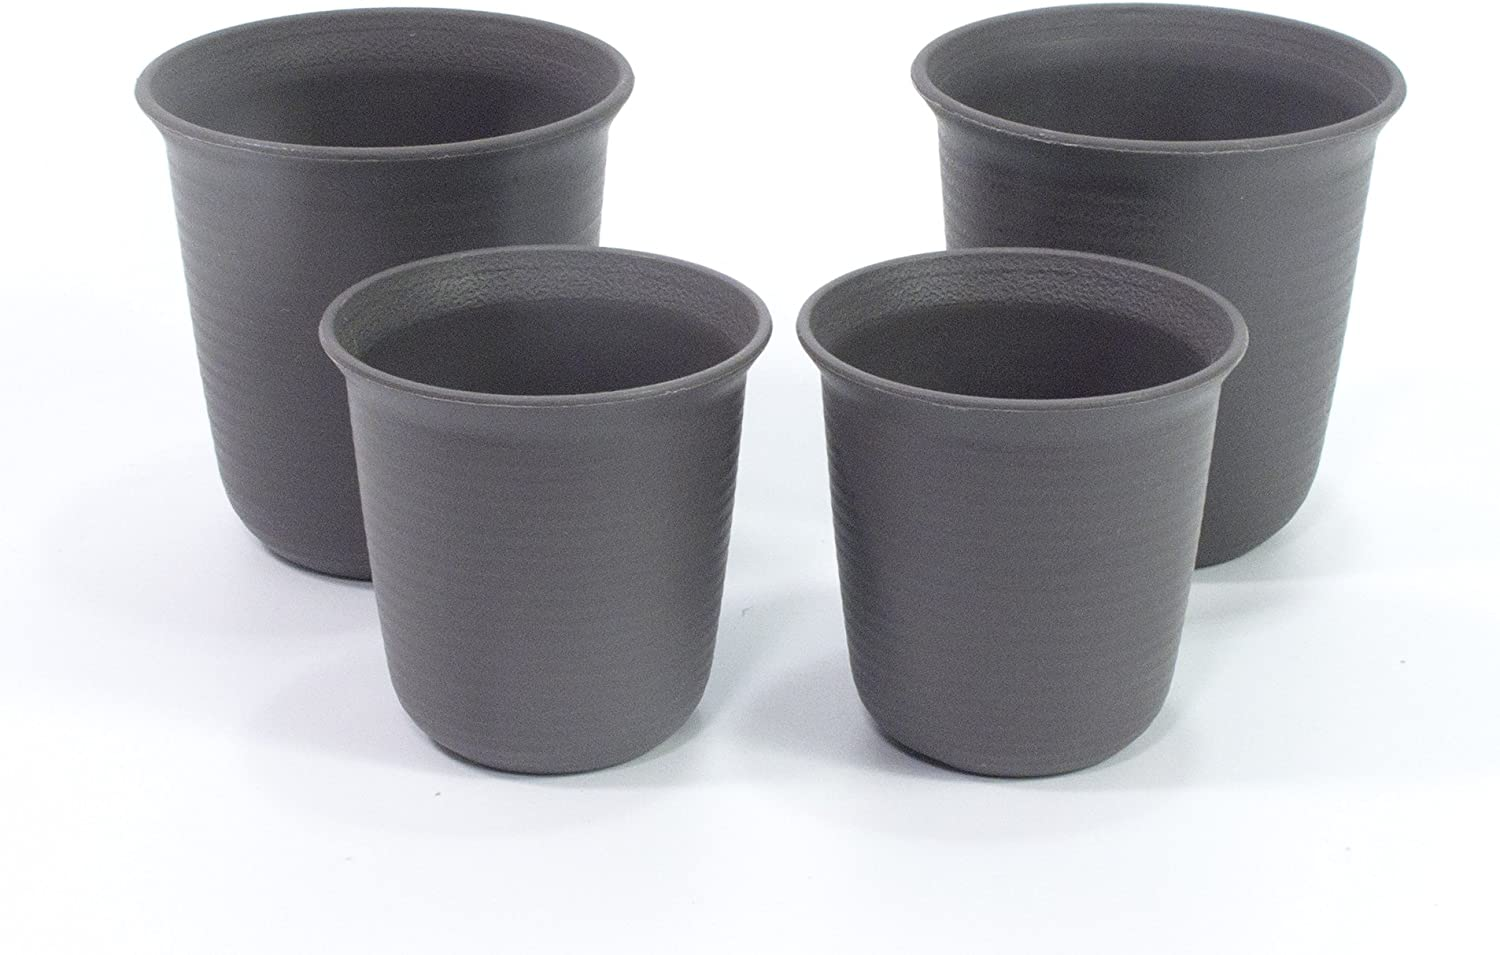 ALL in ONE Mini Plastic Plant Flower Pots for Plants Flowers Succulents Home Office Table Decoration (Mixed Size-Black)